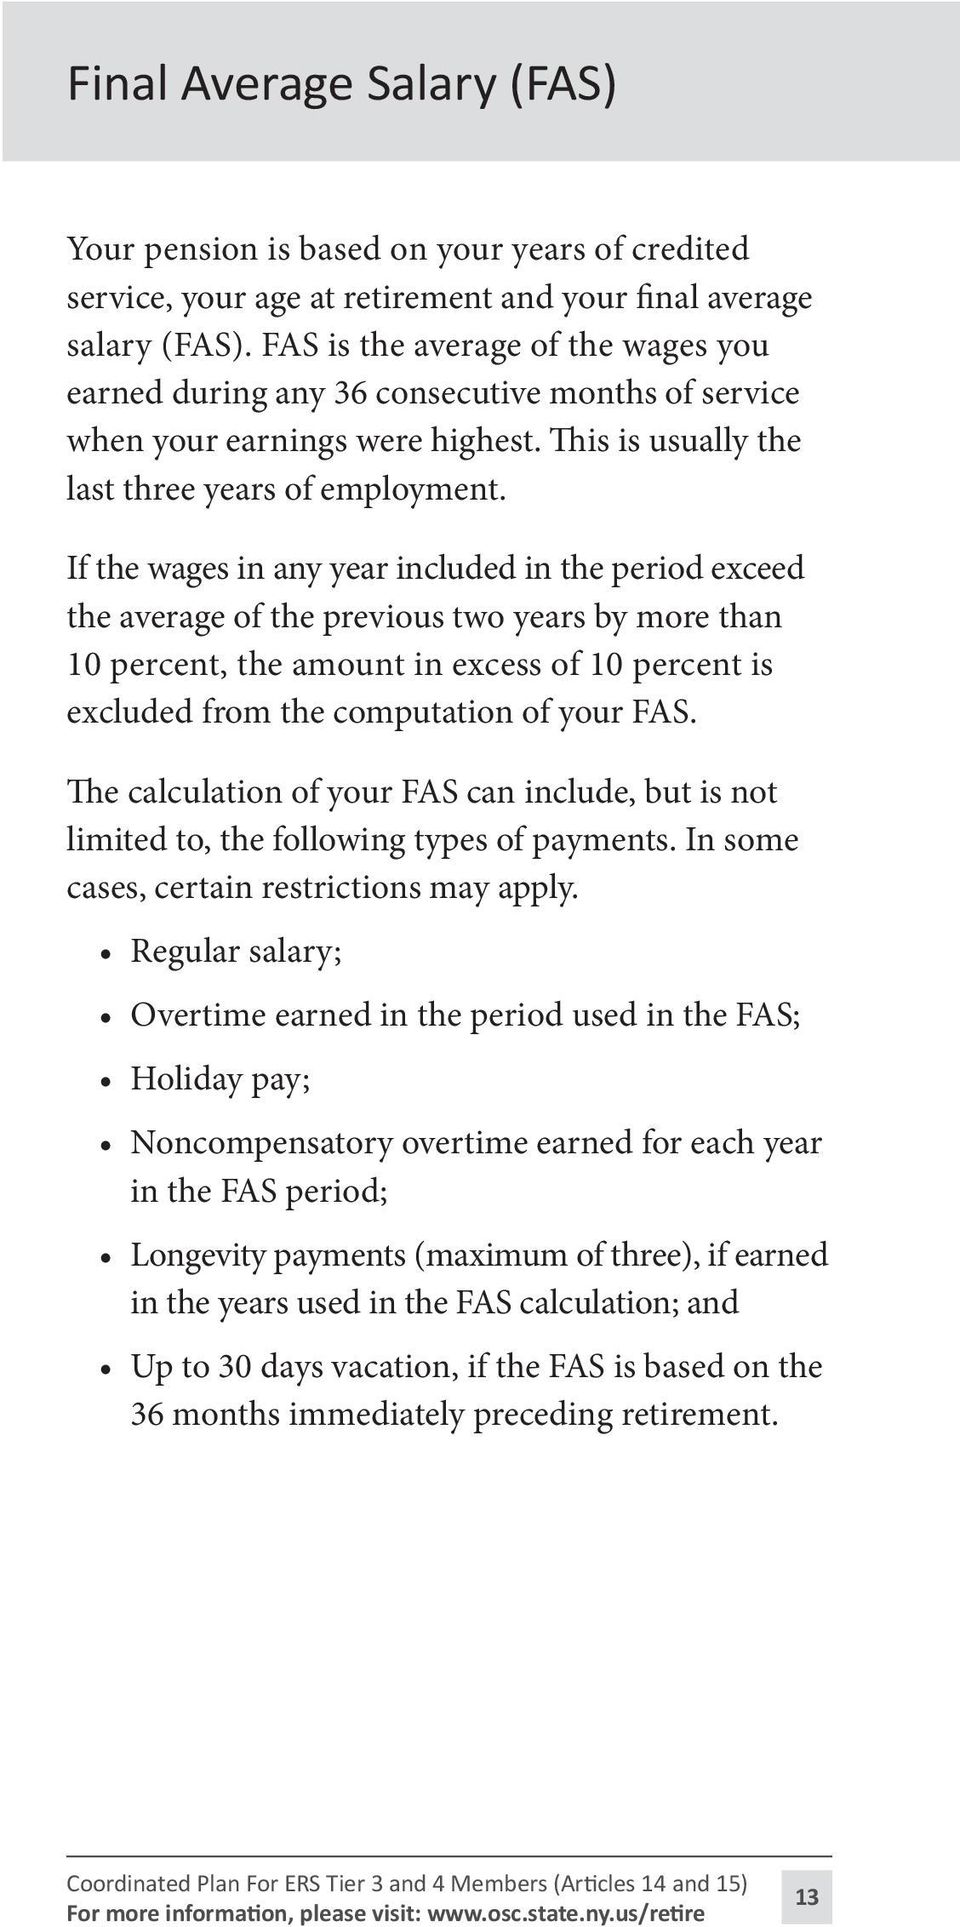 If the wages in any year included in the period exceed the average of the previous two years by more than 10 percent, the amount in excess of 10 percent is excluded from the computation of your FAS.